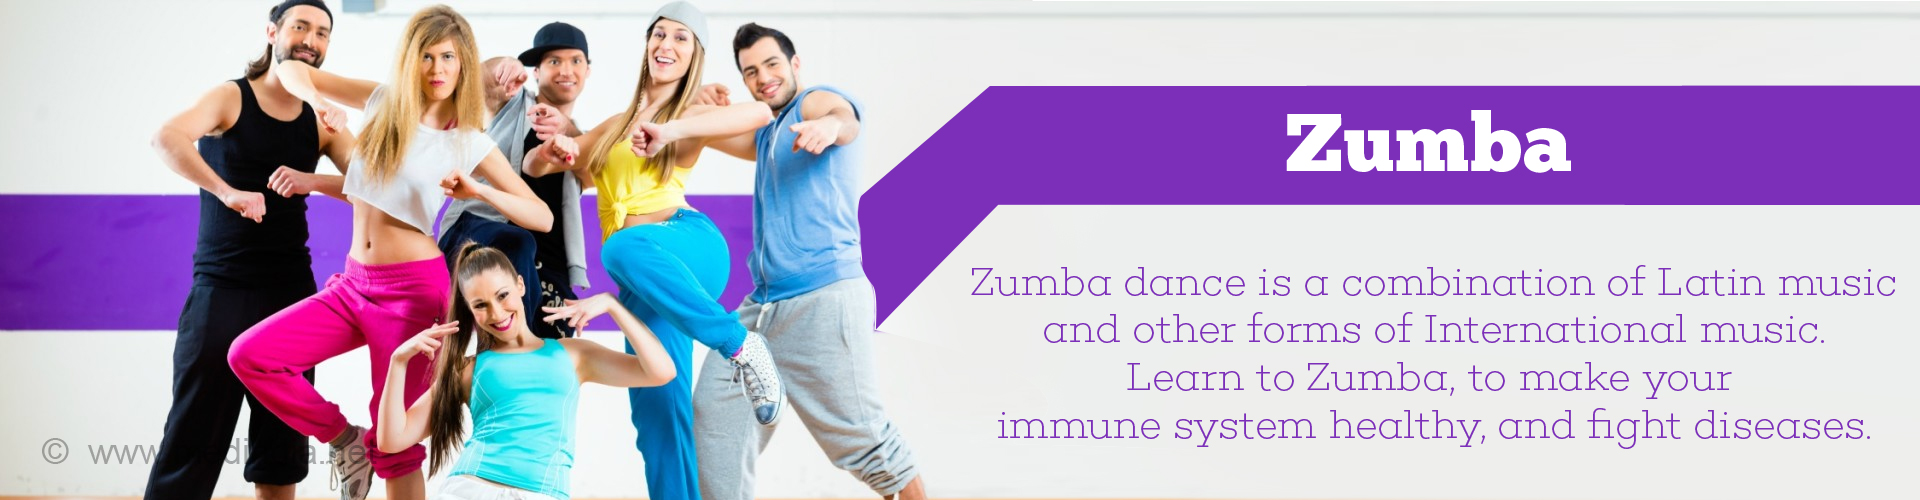 How to Zumba Dance Your Way to Good Health